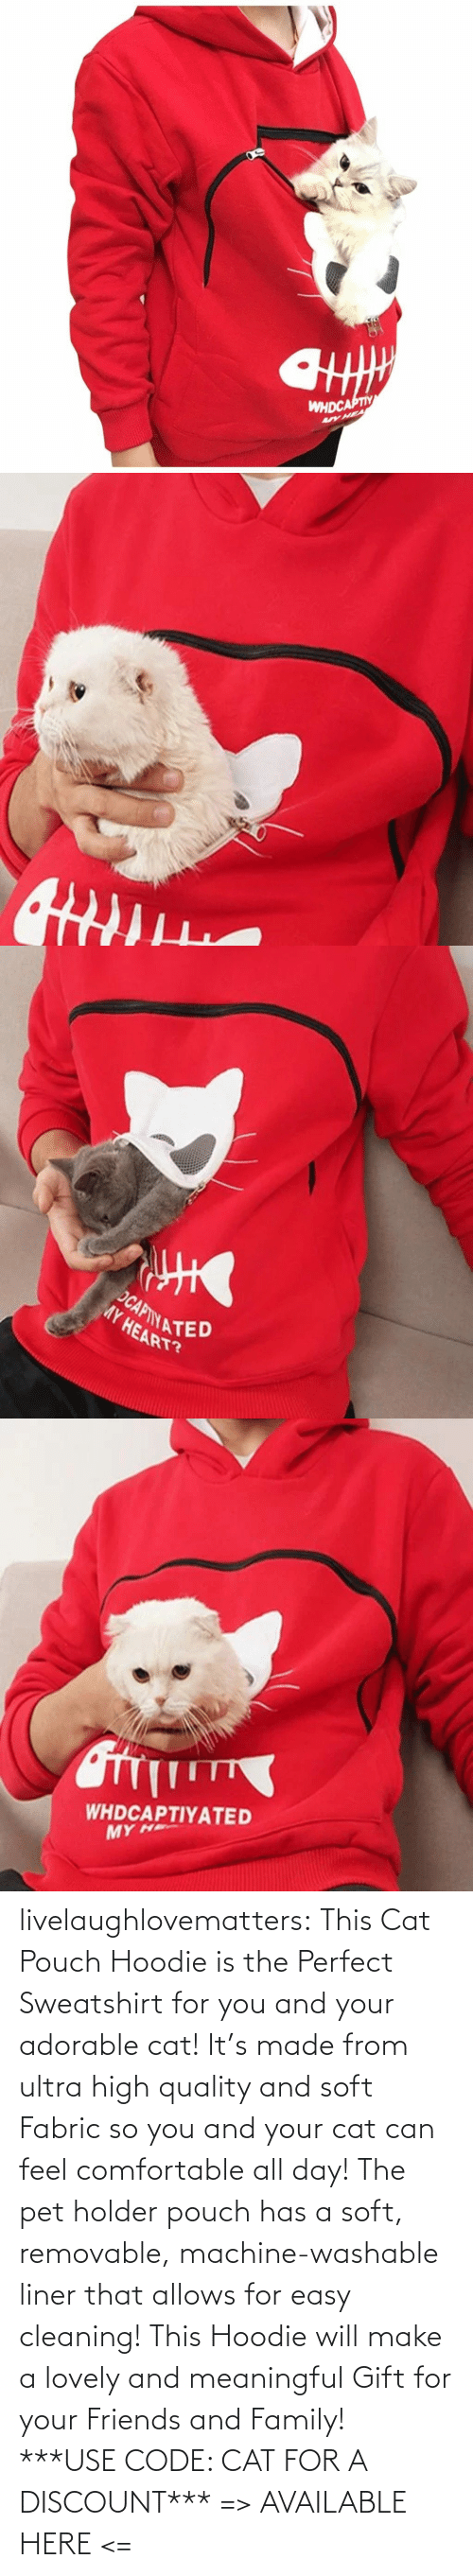 pet: livelaughlovematters: This Cat Pouch Hoodie is the Perfect Sweatshirt for you and your adorable cat! It's made from ultra high quality and soft Fabric so you and your cat can feel comfortable all day! The pet holder pouch has a soft, removable, machine-washable liner that allows for easy cleaning! This Hoodie will make a lovely and meaningful Gift for your Friends and Family!  ***USE CODE: CAT FOR A DISCOUNT*** => AVAILABLE HERE <=